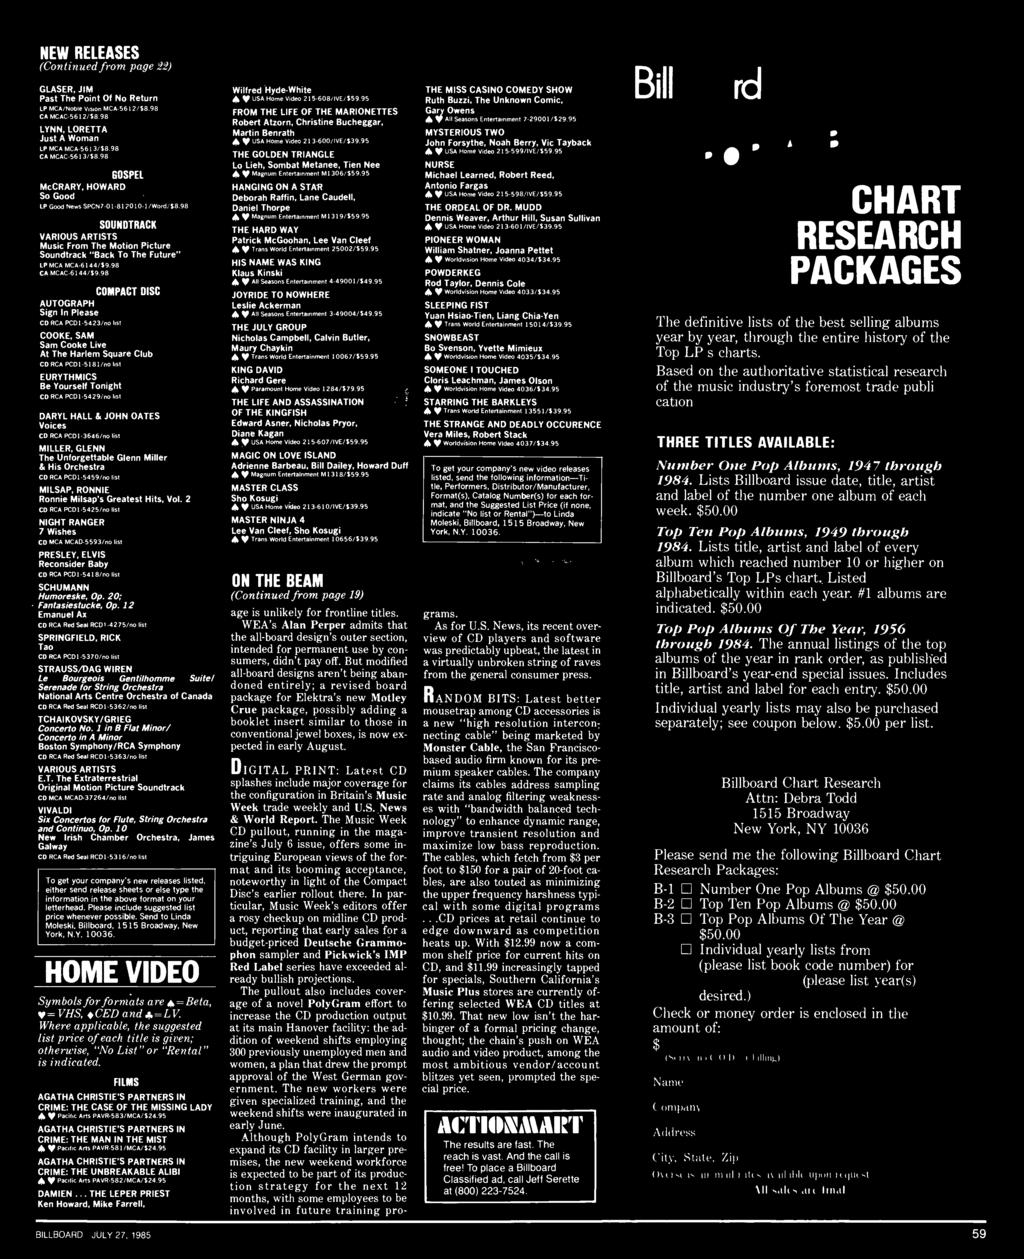 NEW RELEASES (Continued from page 22) GLASER, JIM Past The Point Of No Return LP MCA /Noble Vision MCA -5612/$8.98 CA MCAC 5612 58.98 LYNN, LORETTA Just A Woman LP MCA MCA -5613/58.